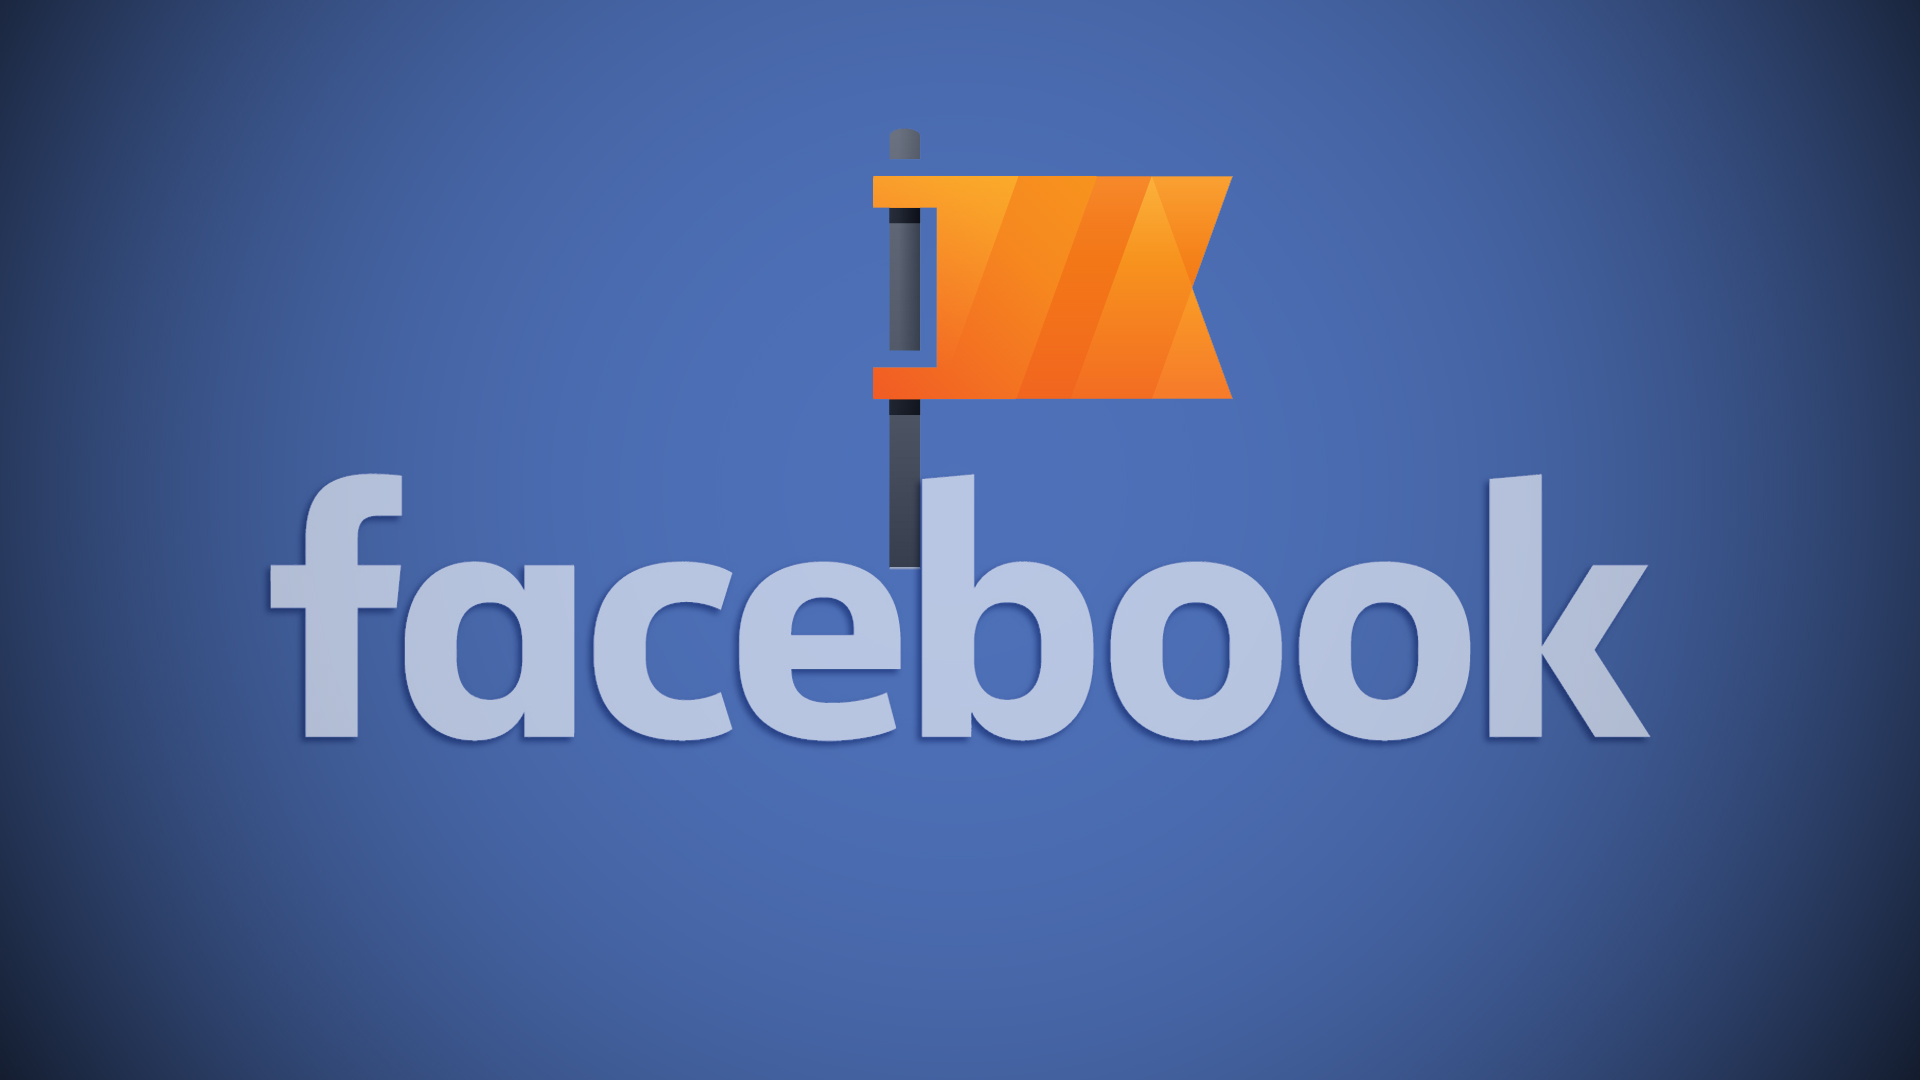 Facebook to remove 'Company Overview' and 'Biography' fields from Pages